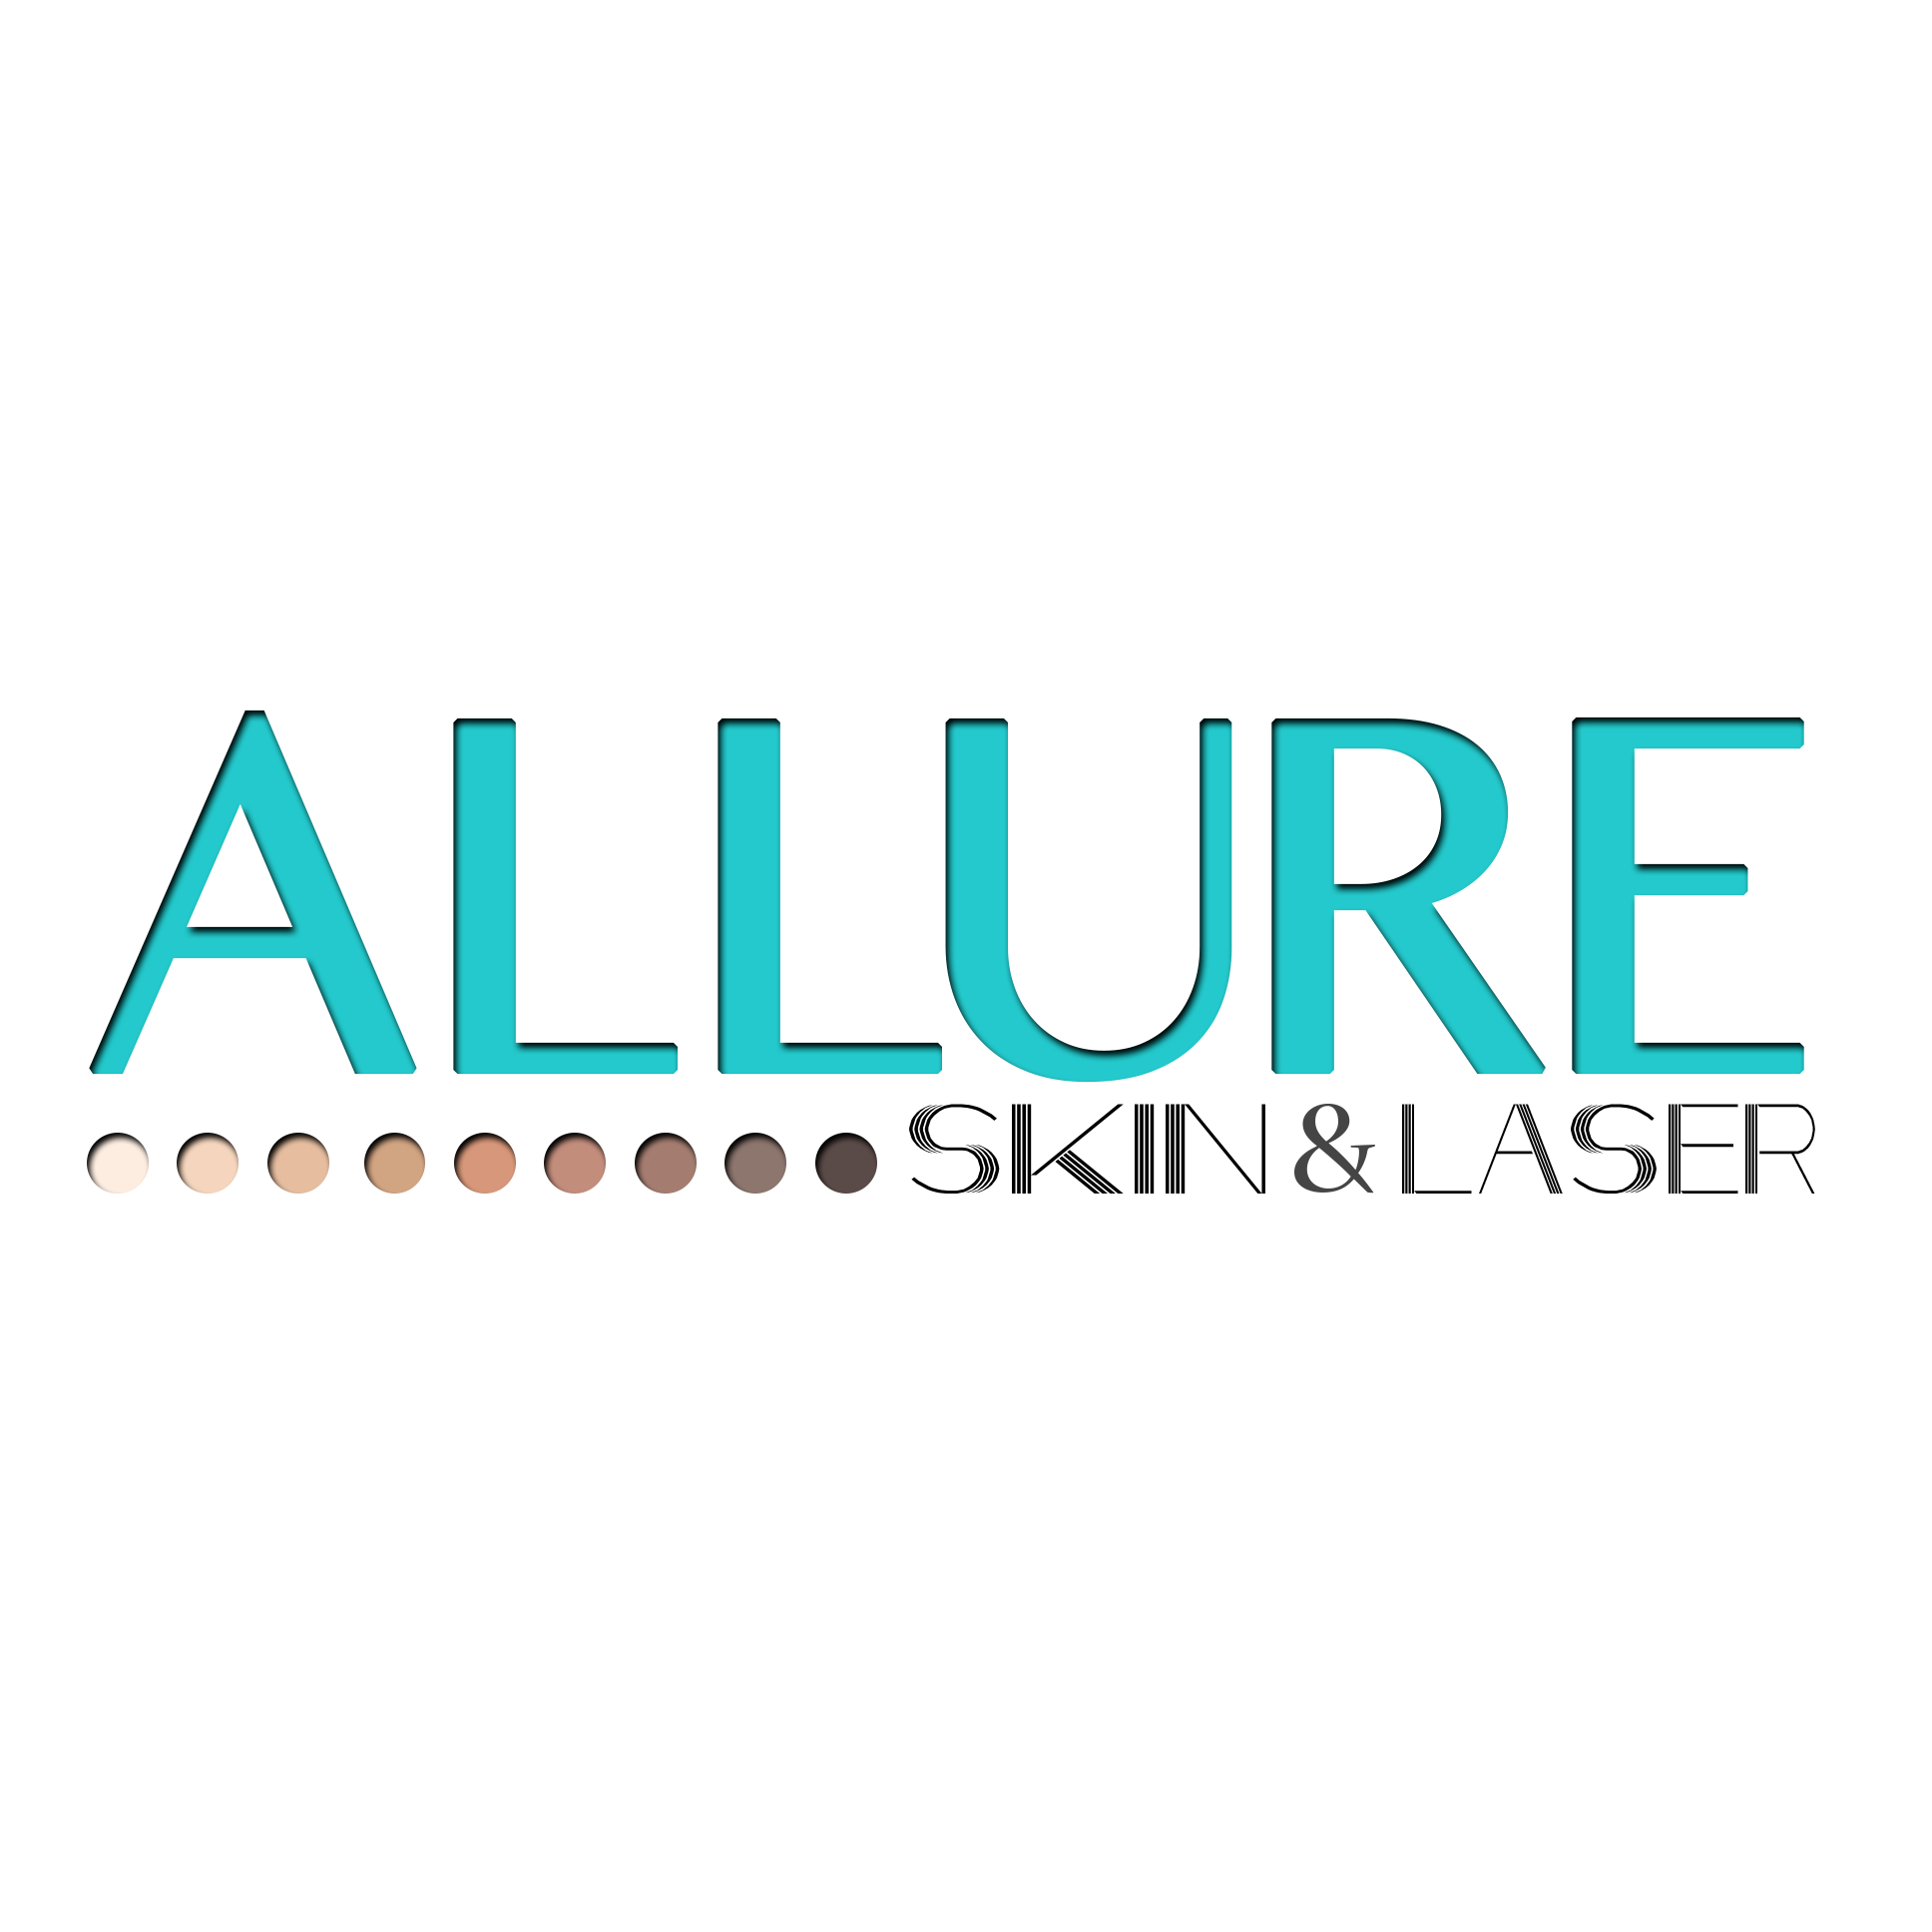 Allure Skin and Laser - Queen Creek, AZ - Spas